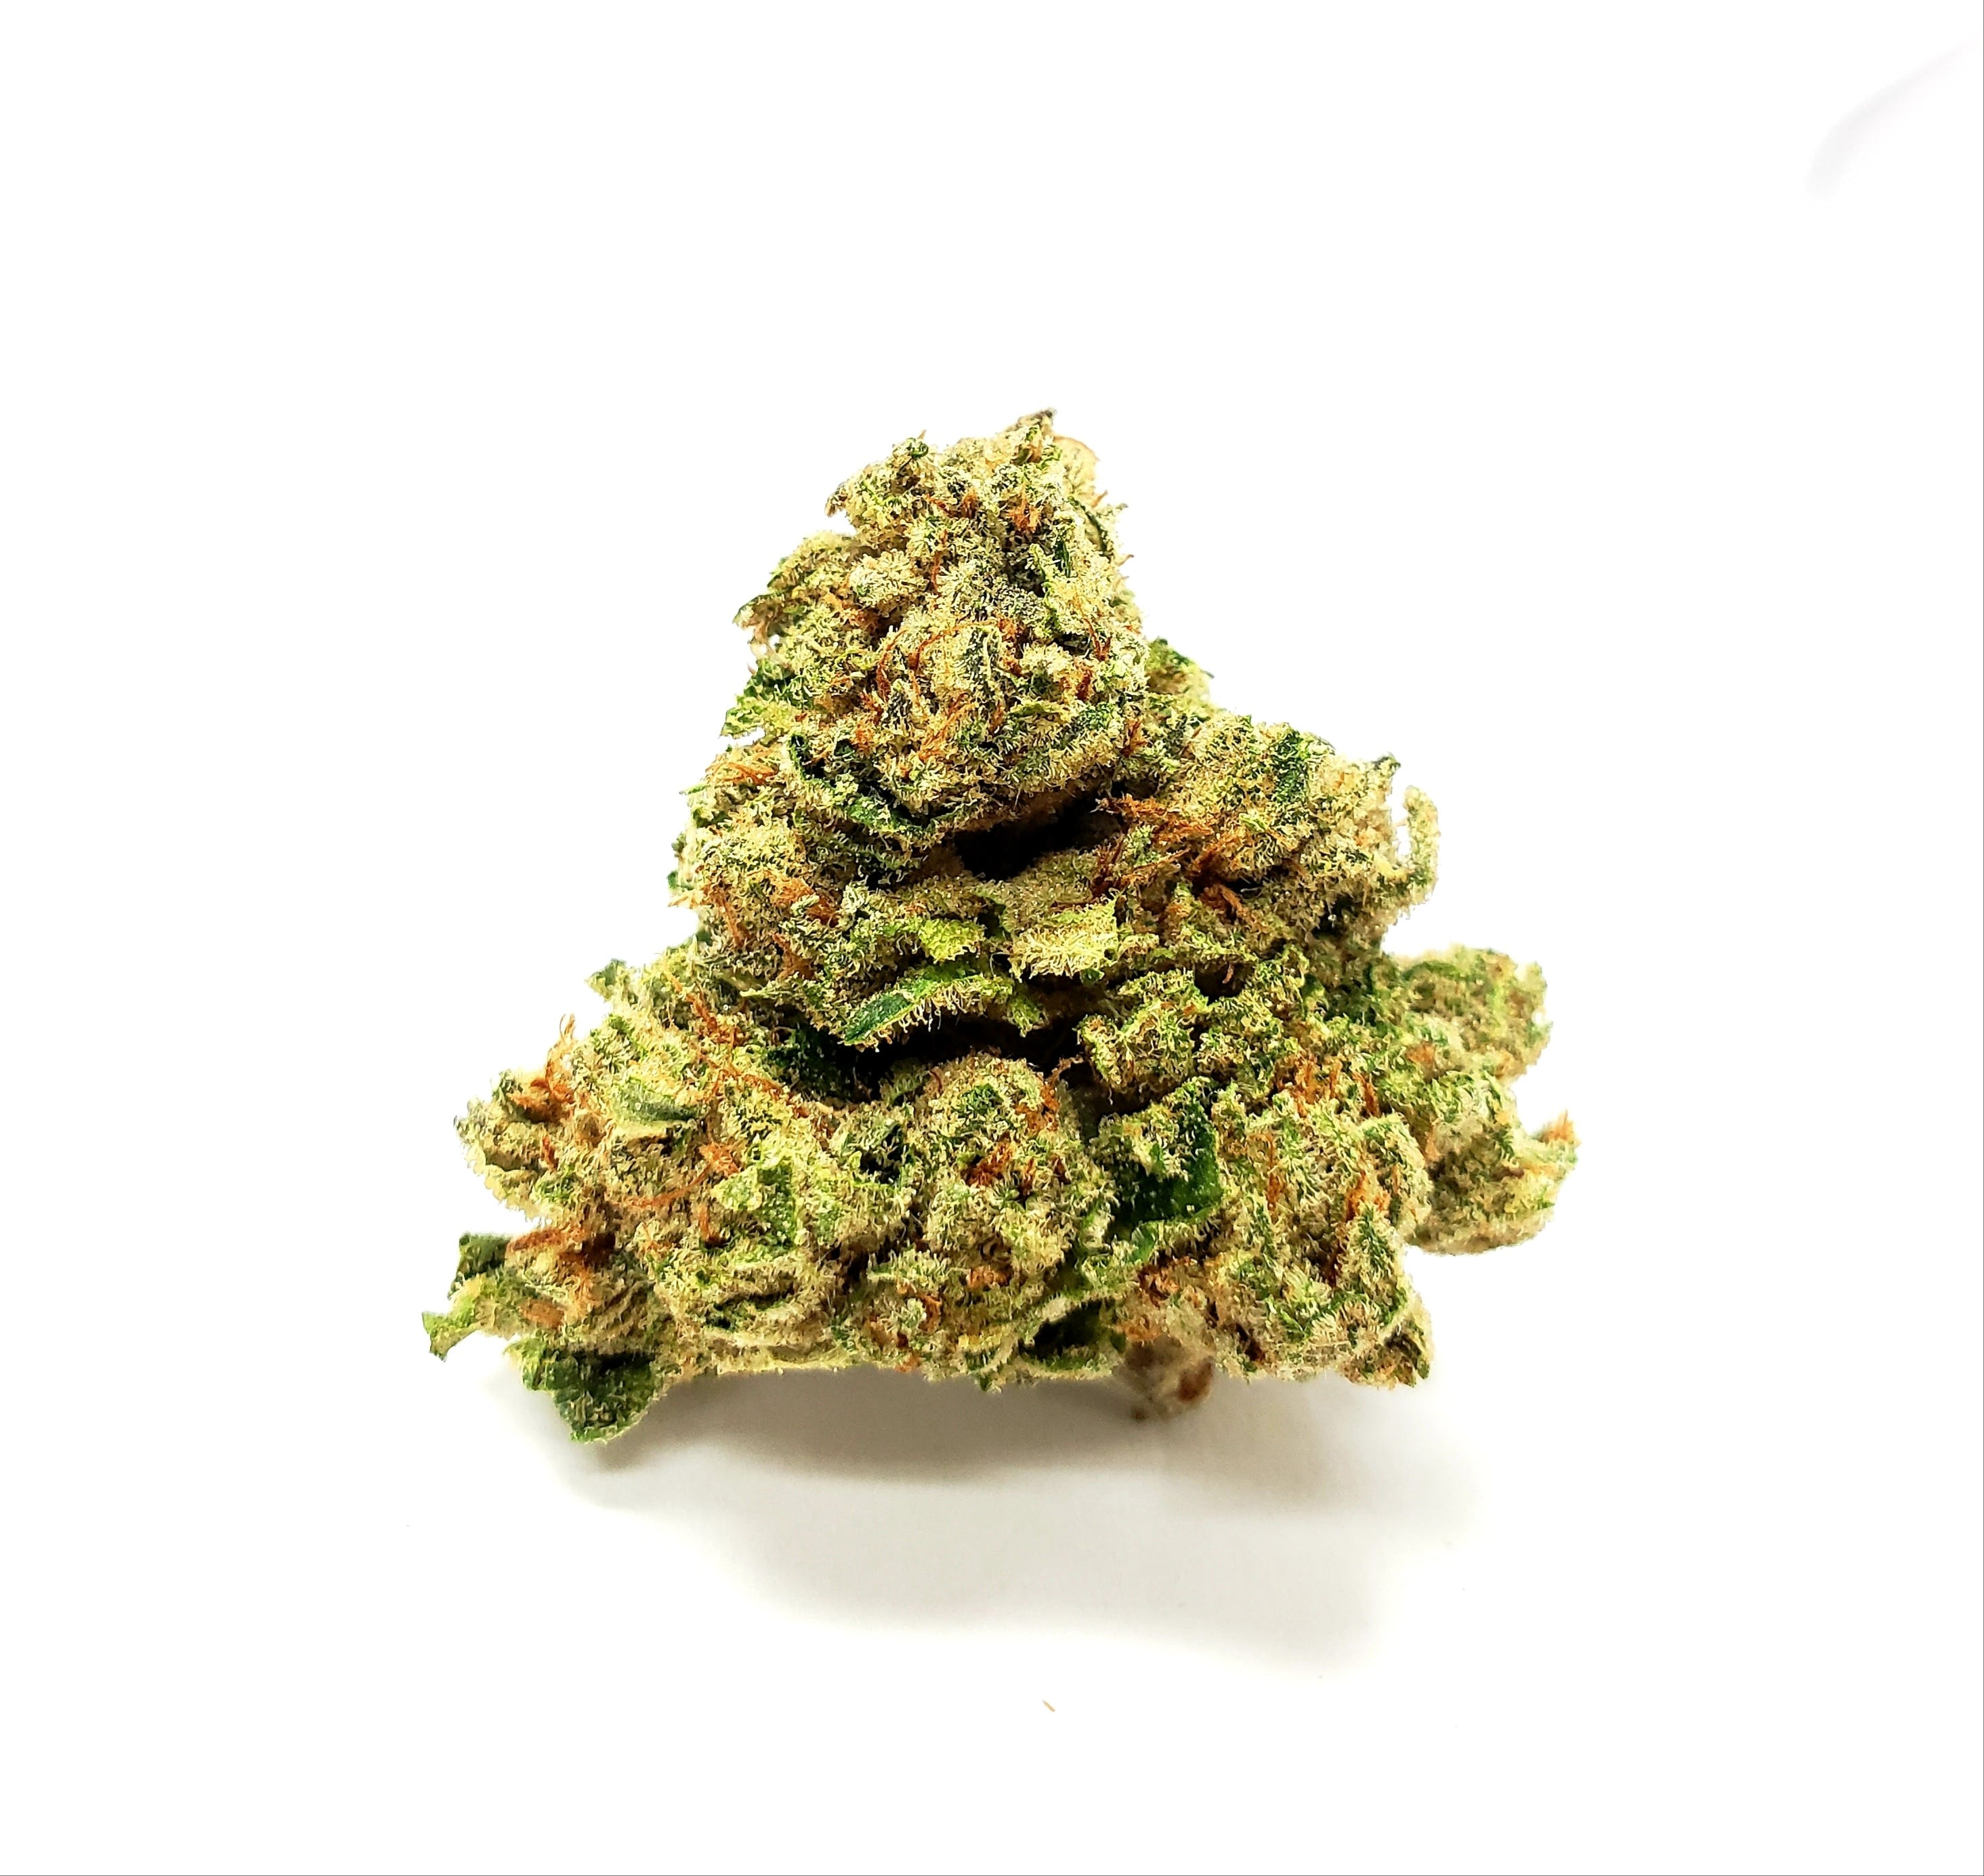 marijuana-dispensaries-4123-live-oak-ave-arcadia-topshelf-jet-fuel-og-5g-40-2445